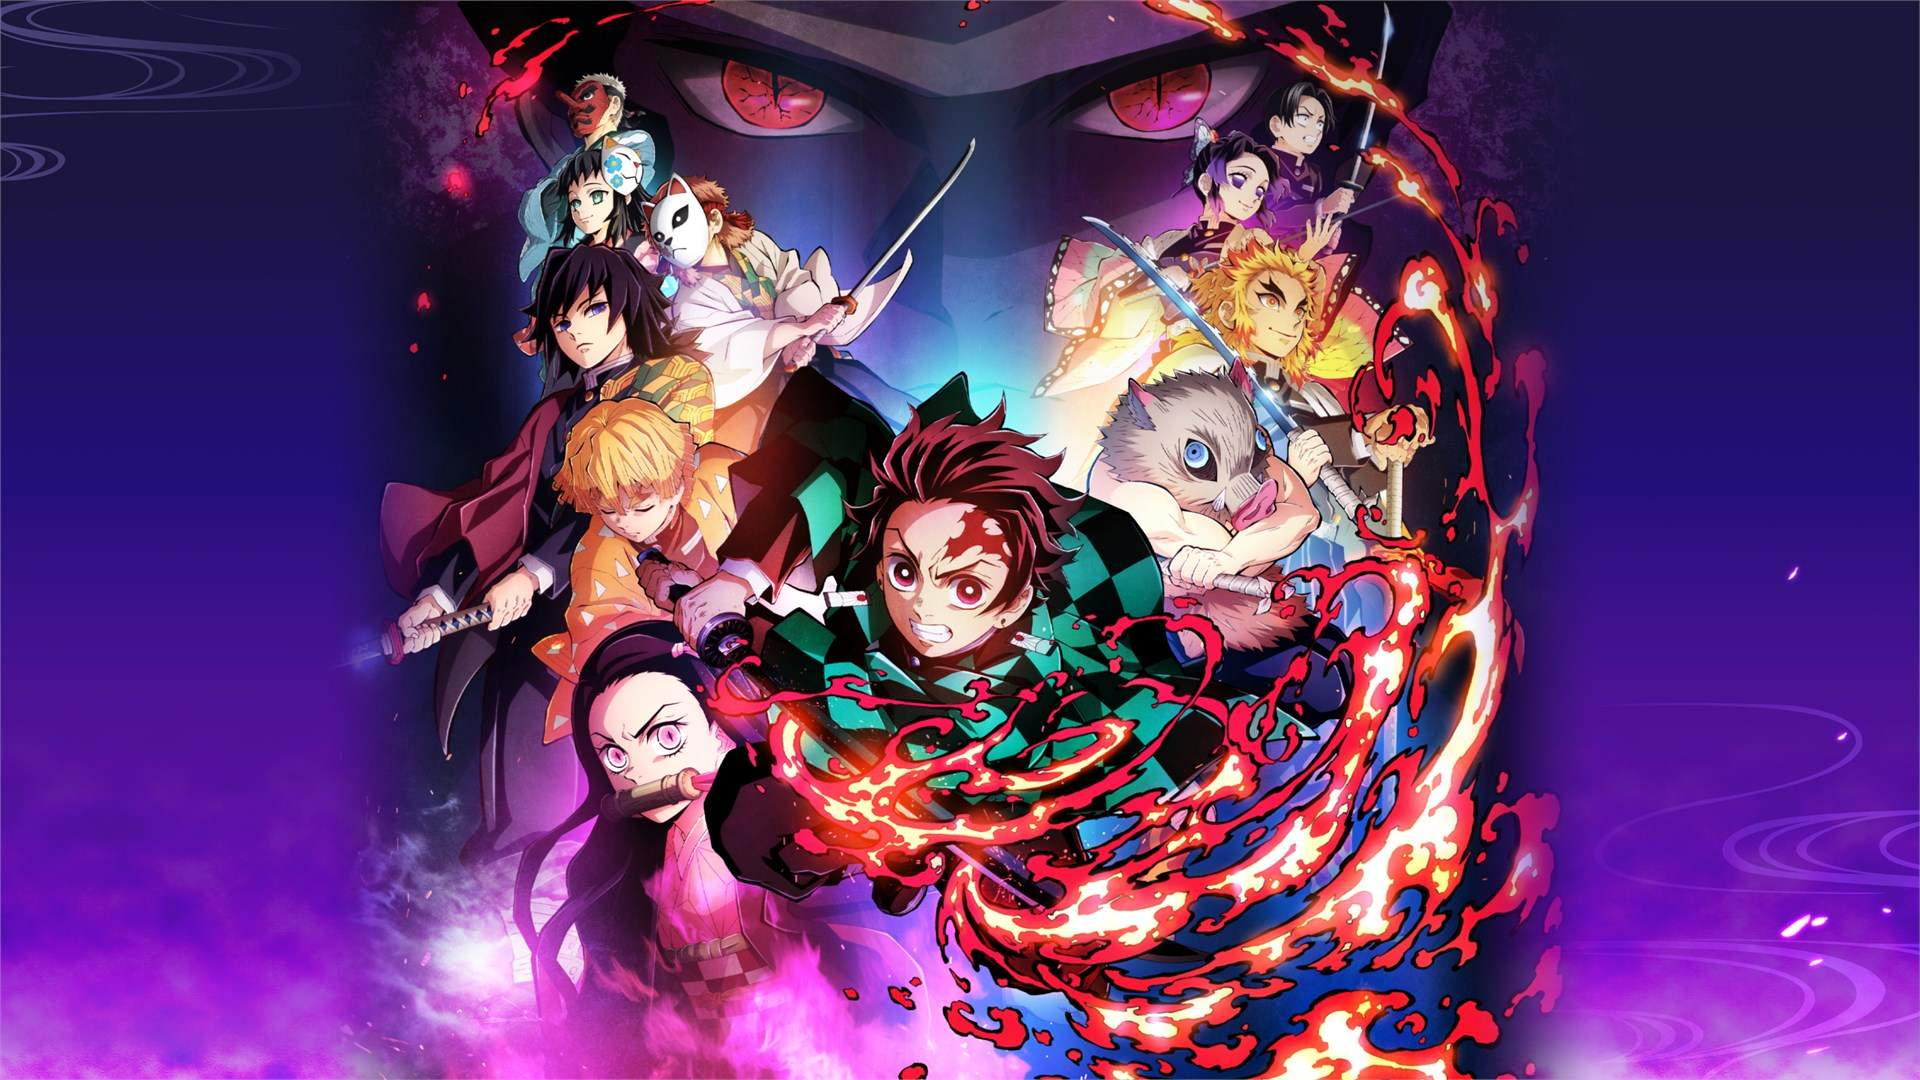 Demon Slayer -Kimetsu no Yaiba- The Hinokami Chronicles Digital Deluxe Edition Is Now Available For Xbox One And Xbox Series X S 1